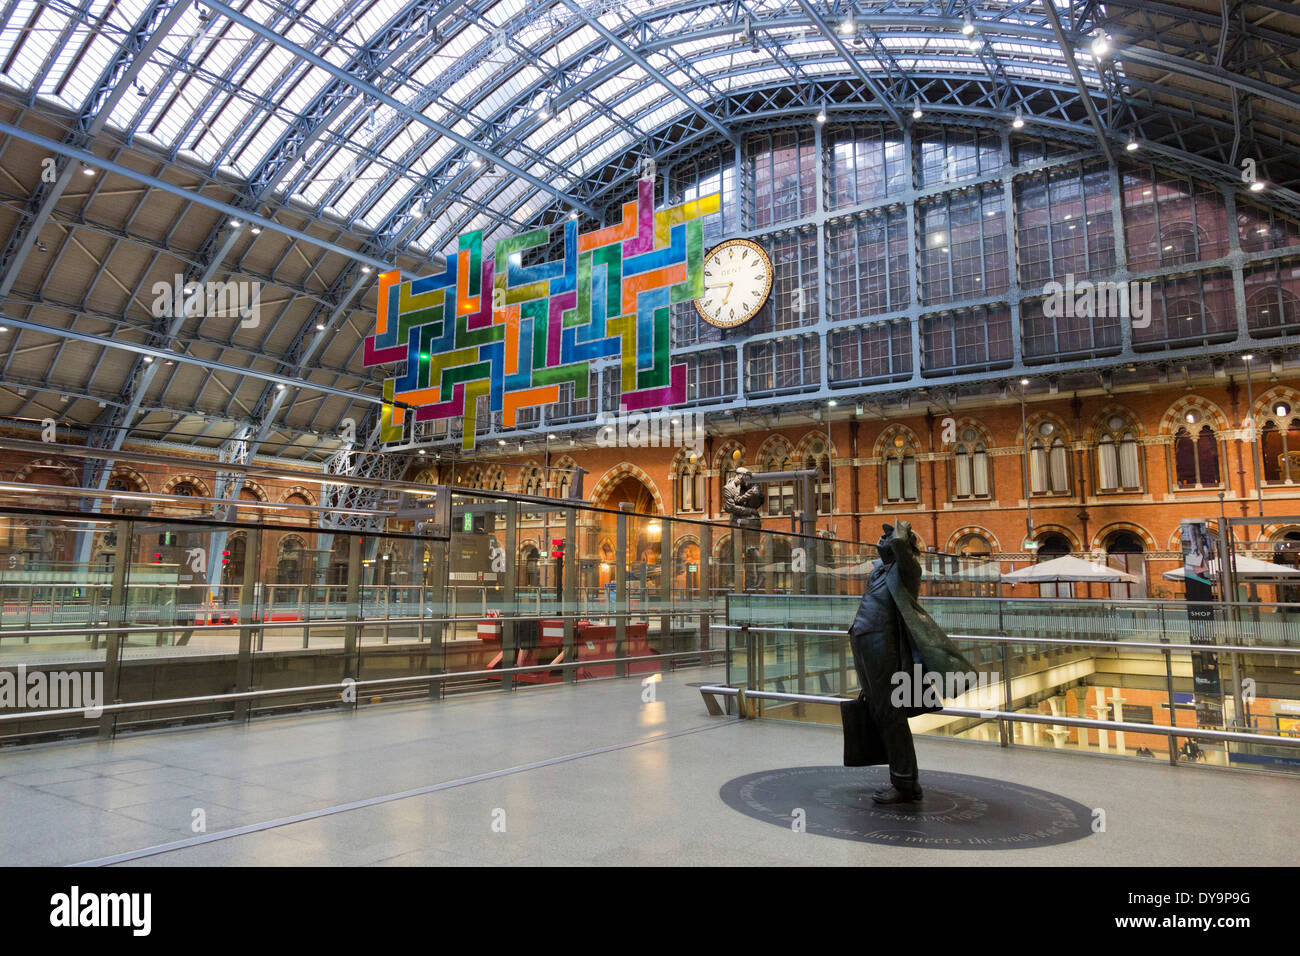 The Terrace Wires installation 'Chromolocomotion' by artist David Batchelor at St Pancras Station, London - Stock Image